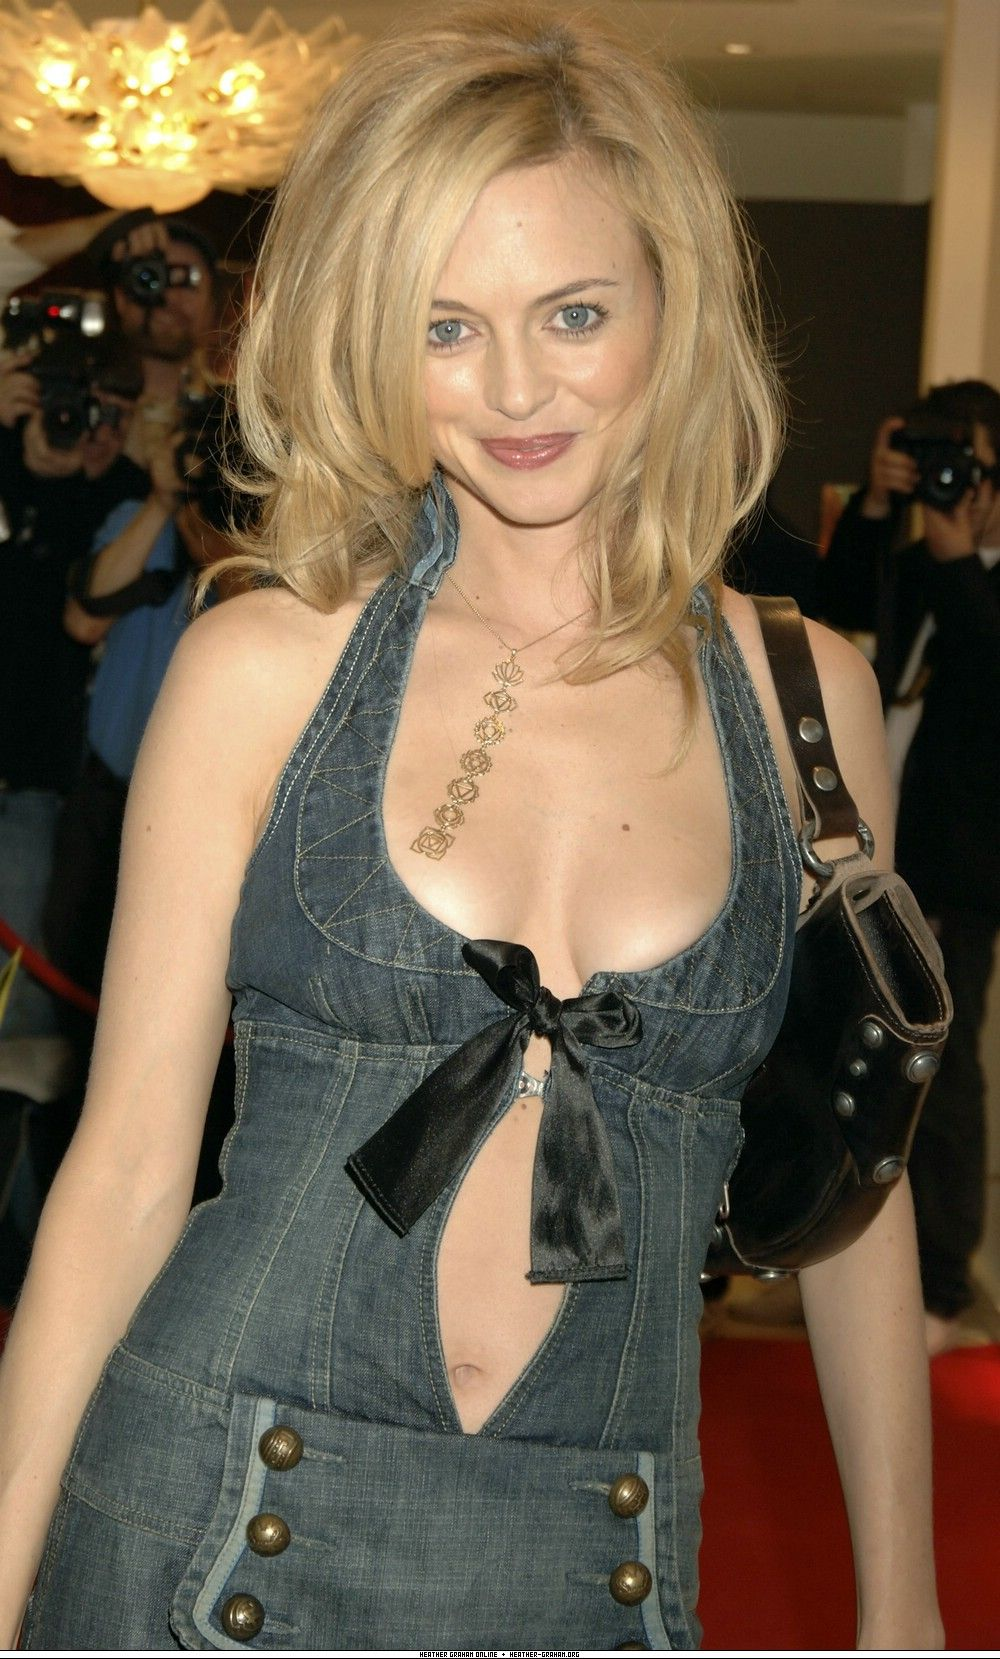 Heather Graham | Heather Graham | Pinterest